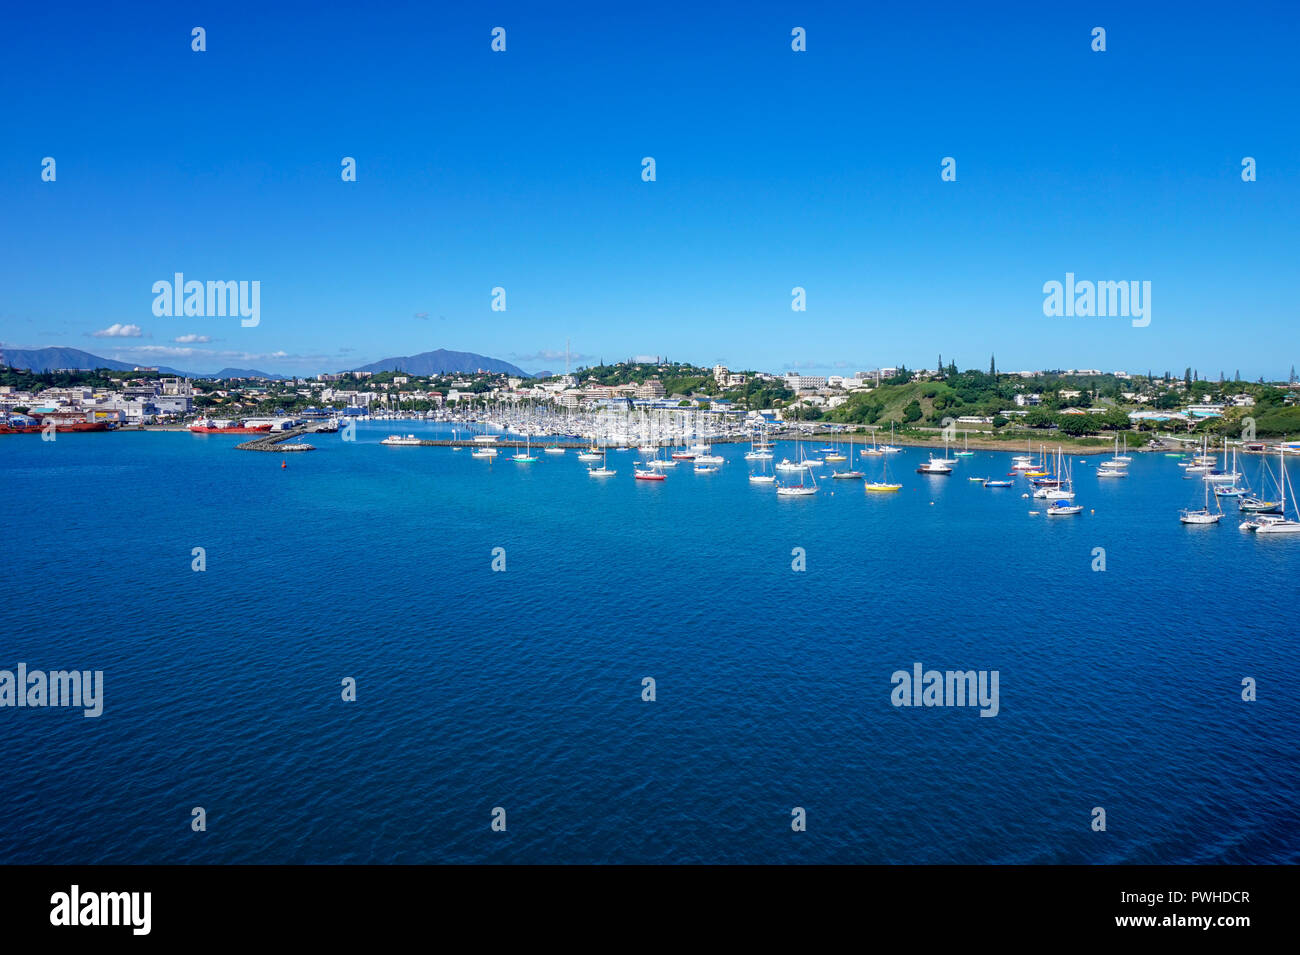 View of Moselle Bay in Noumea, New Caledonia - Stock Image